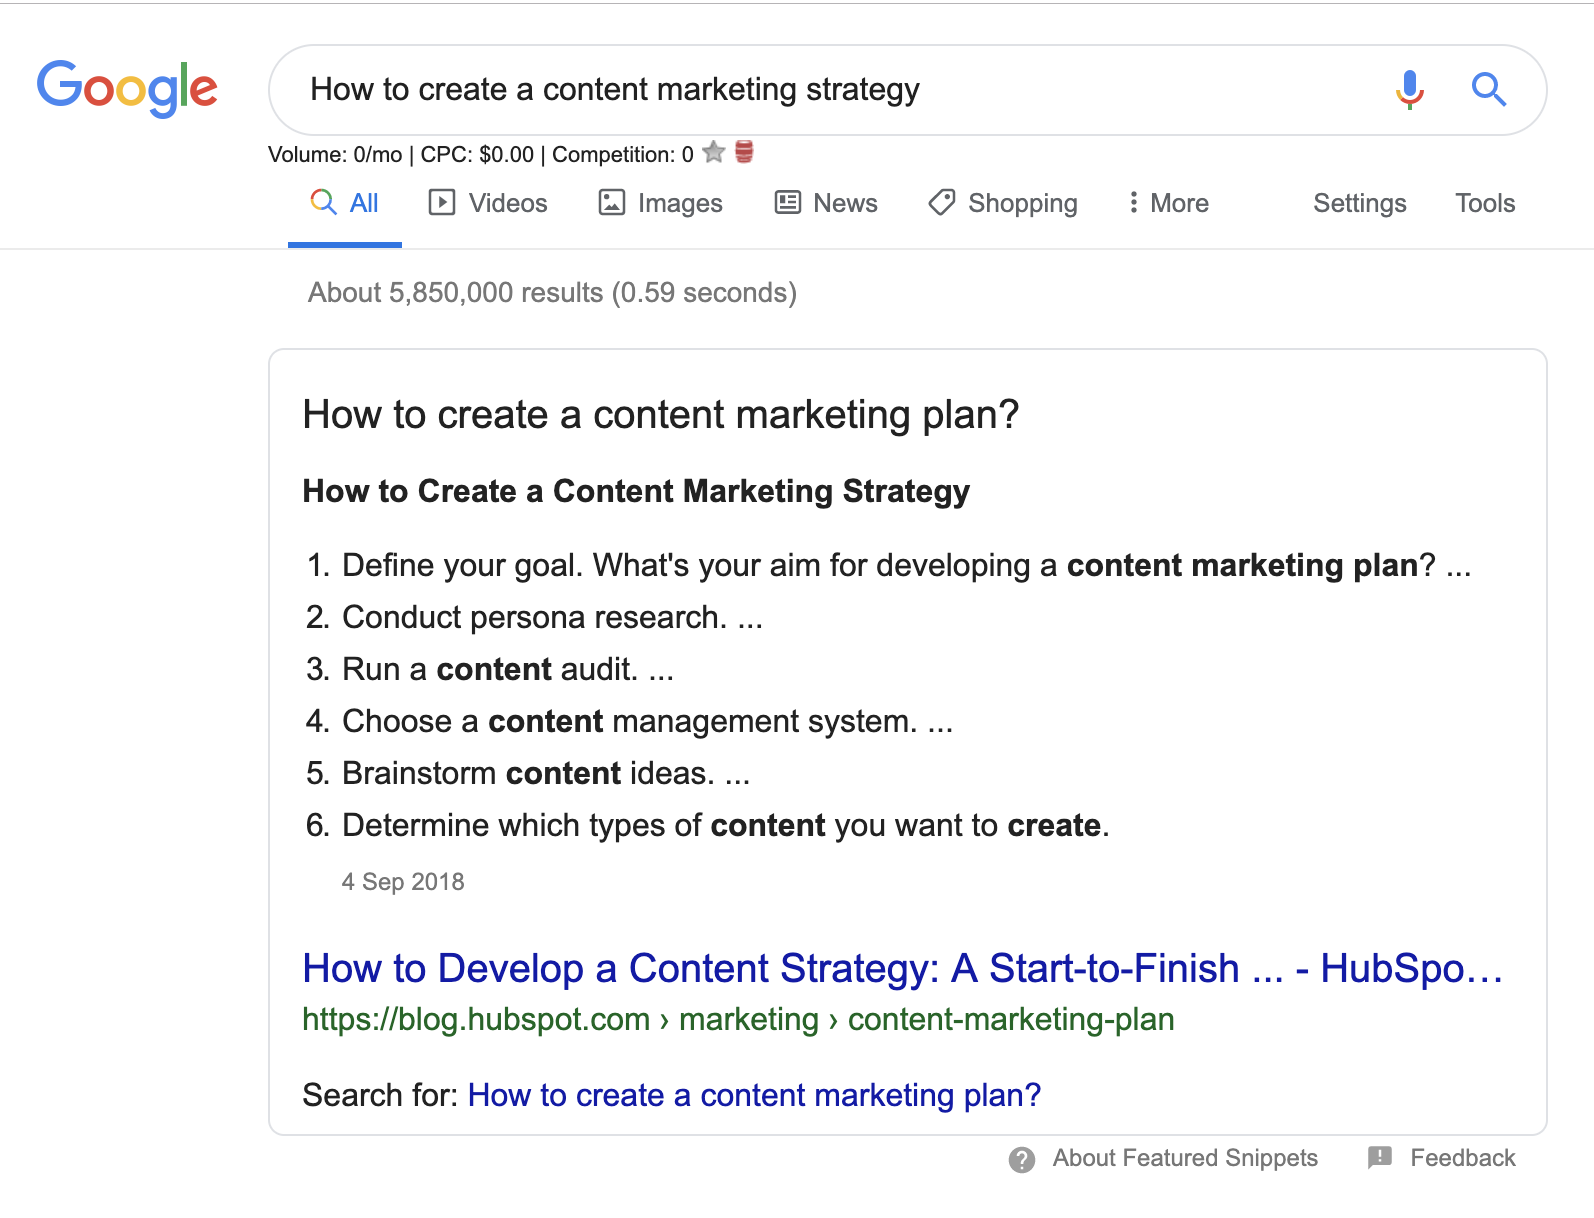 22 Companies Dominating the World with Content Marketing